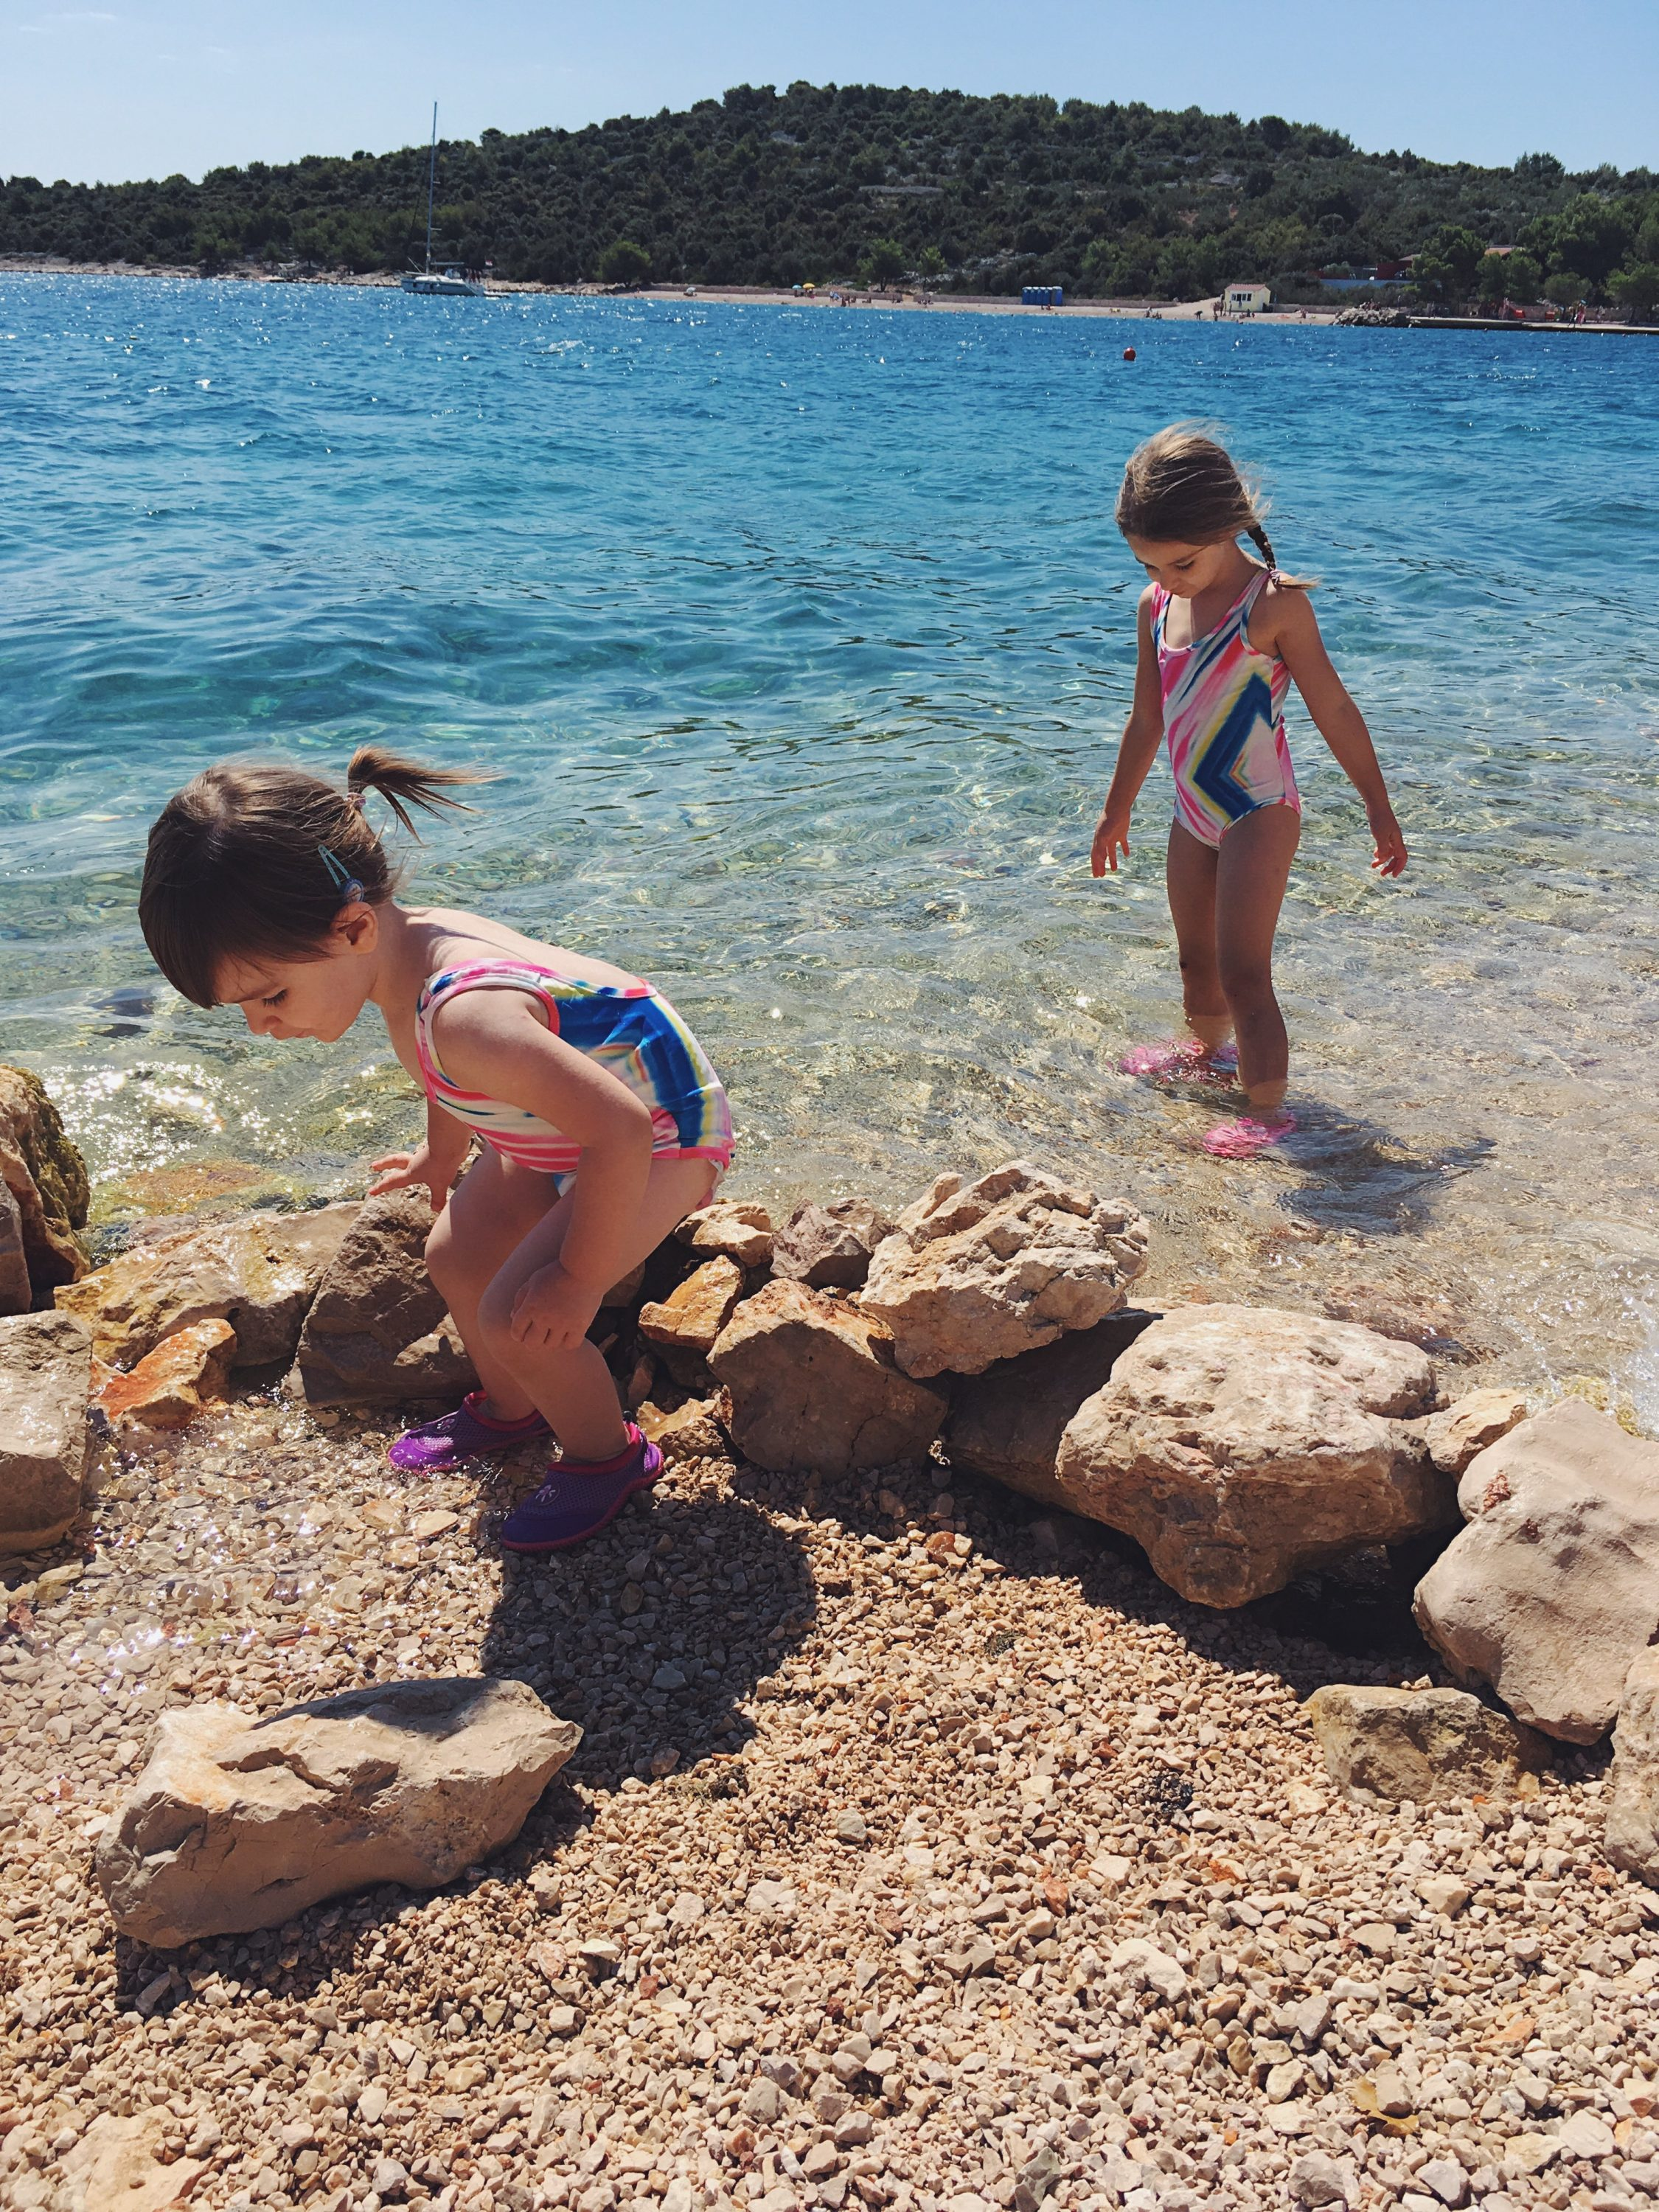 Murter Island Croatia full of life free spirit nature mom blogger jezera tisno happiness mama blogerica traveling kids lifestyle sea adriatic jadransko more more less ines blogger travel boat summer